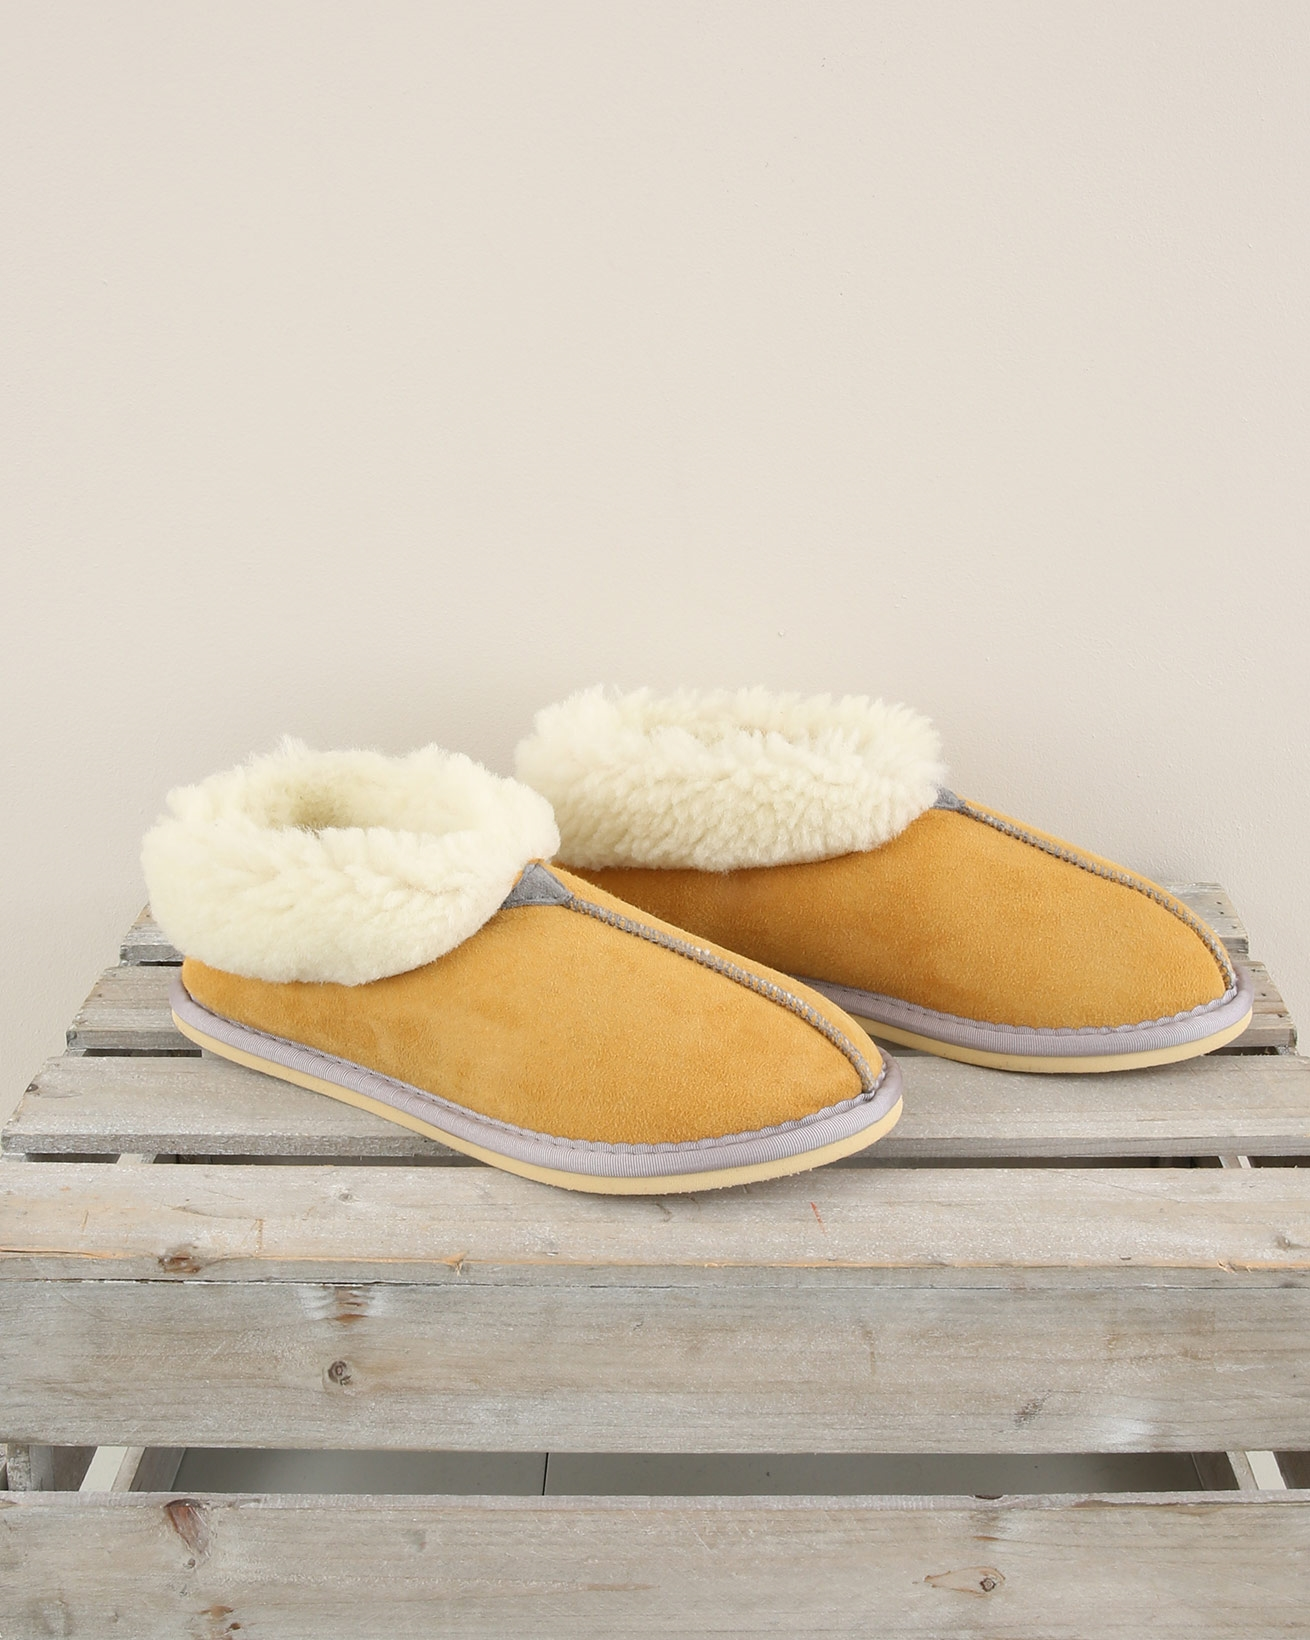 Ladies Sheepskin bootee slipper - Size 6 - Gorse - 1968